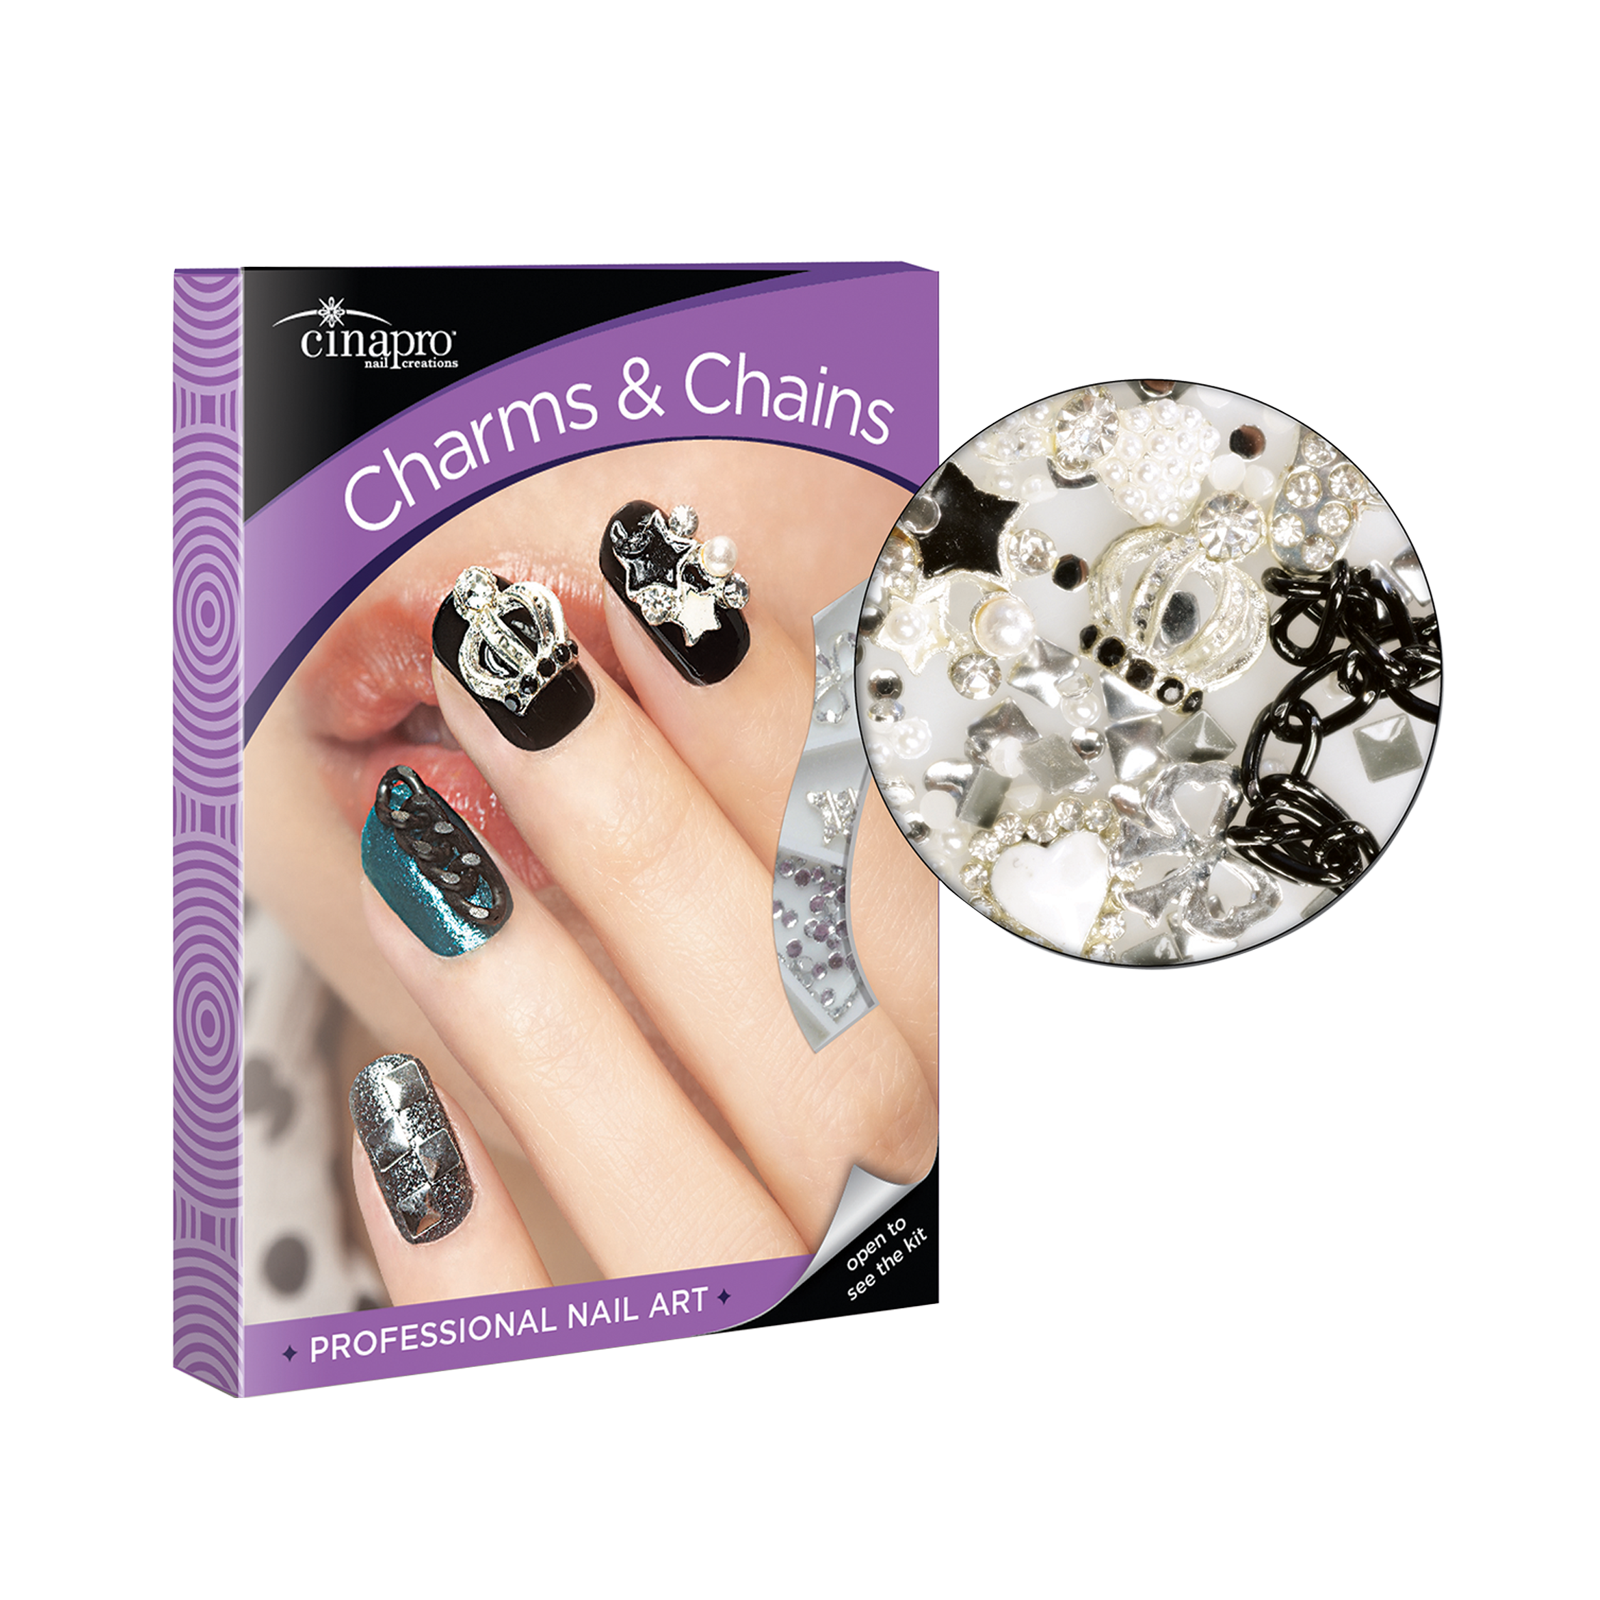 Cinapro professional nail art kit charms chains cuccio cina cinapro professional nail art kit charms chains prinsesfo Gallery